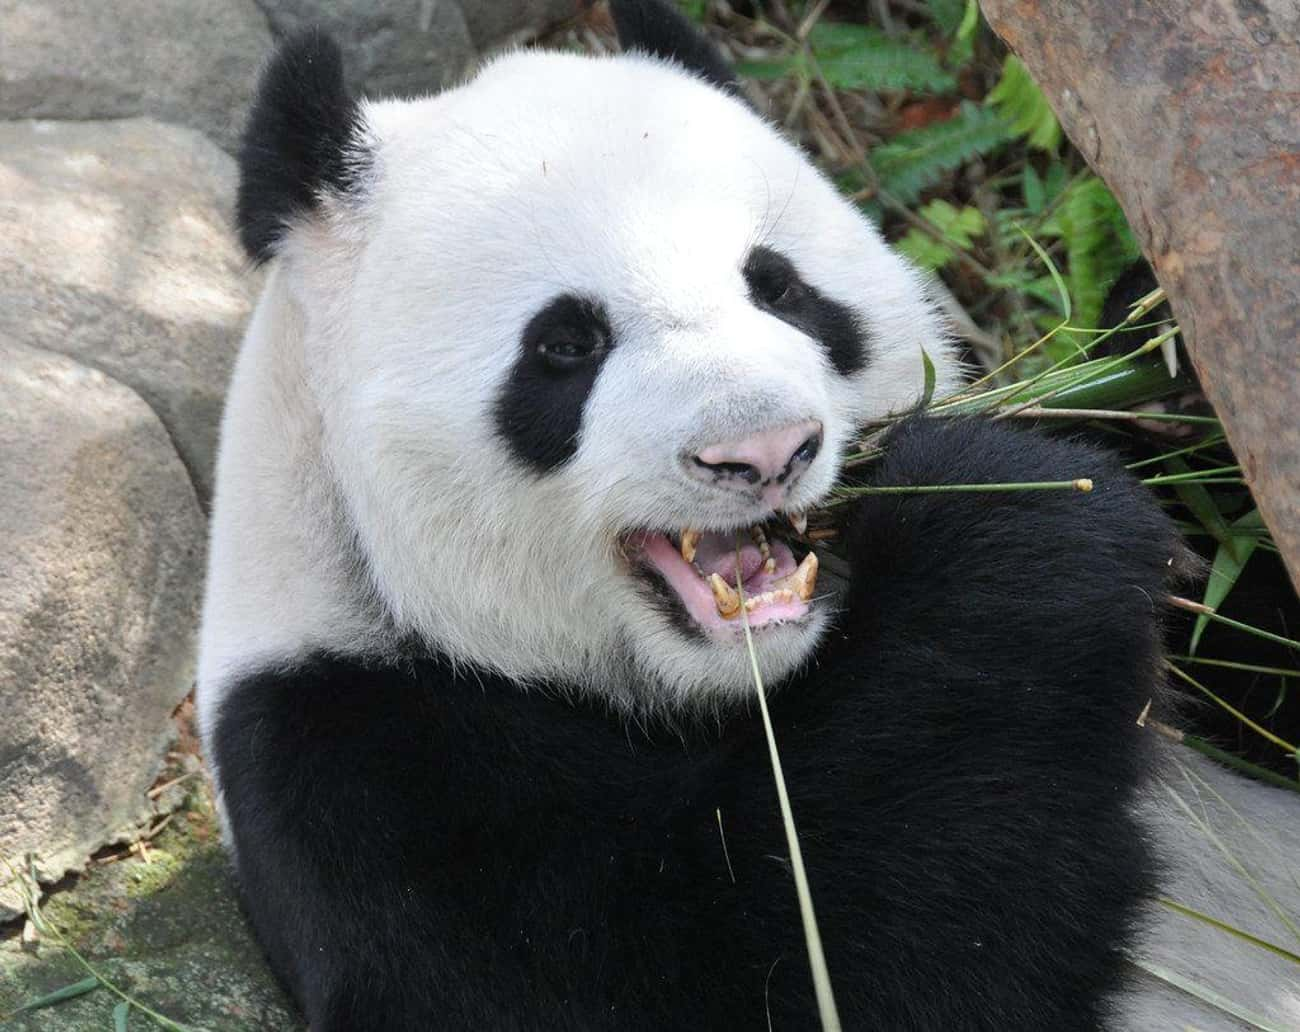 Giant Panda is listed (or ranked) 4 on the list The Most Charismatic Megafauna